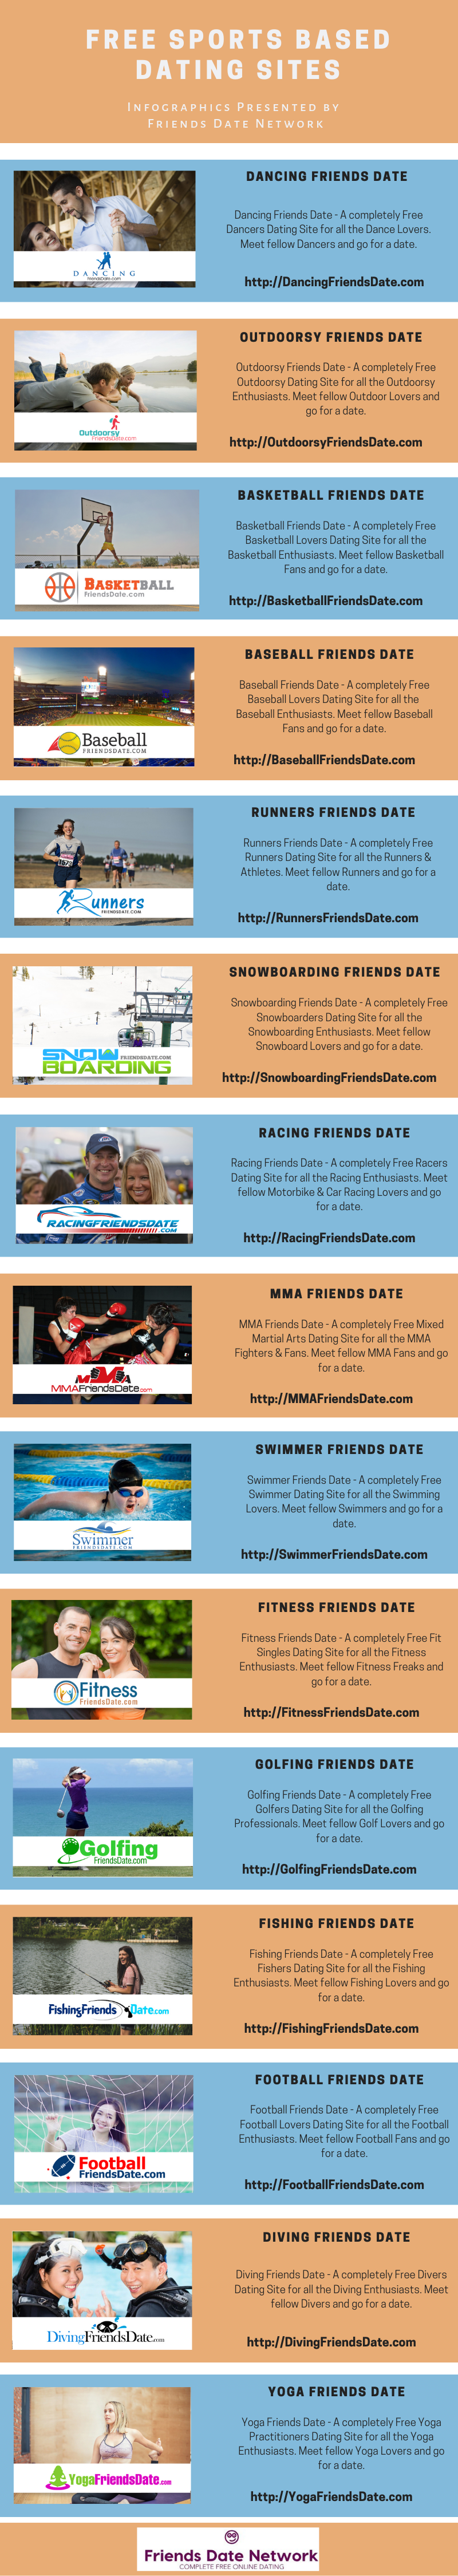 Free Sports Based Dating Sites [Infographics] - Friends Date Network